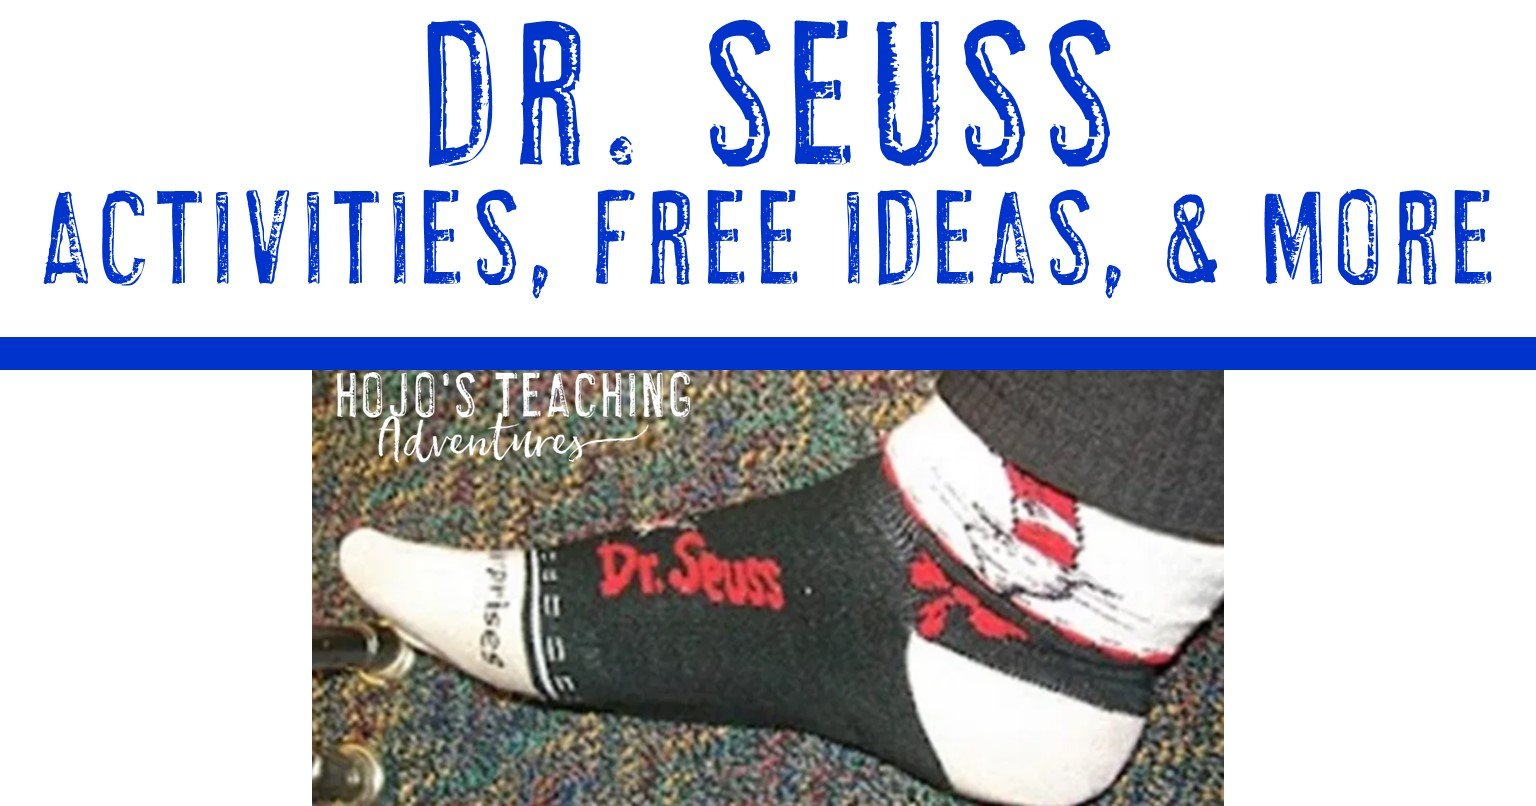 dr. seuss activities, free ideas, & more